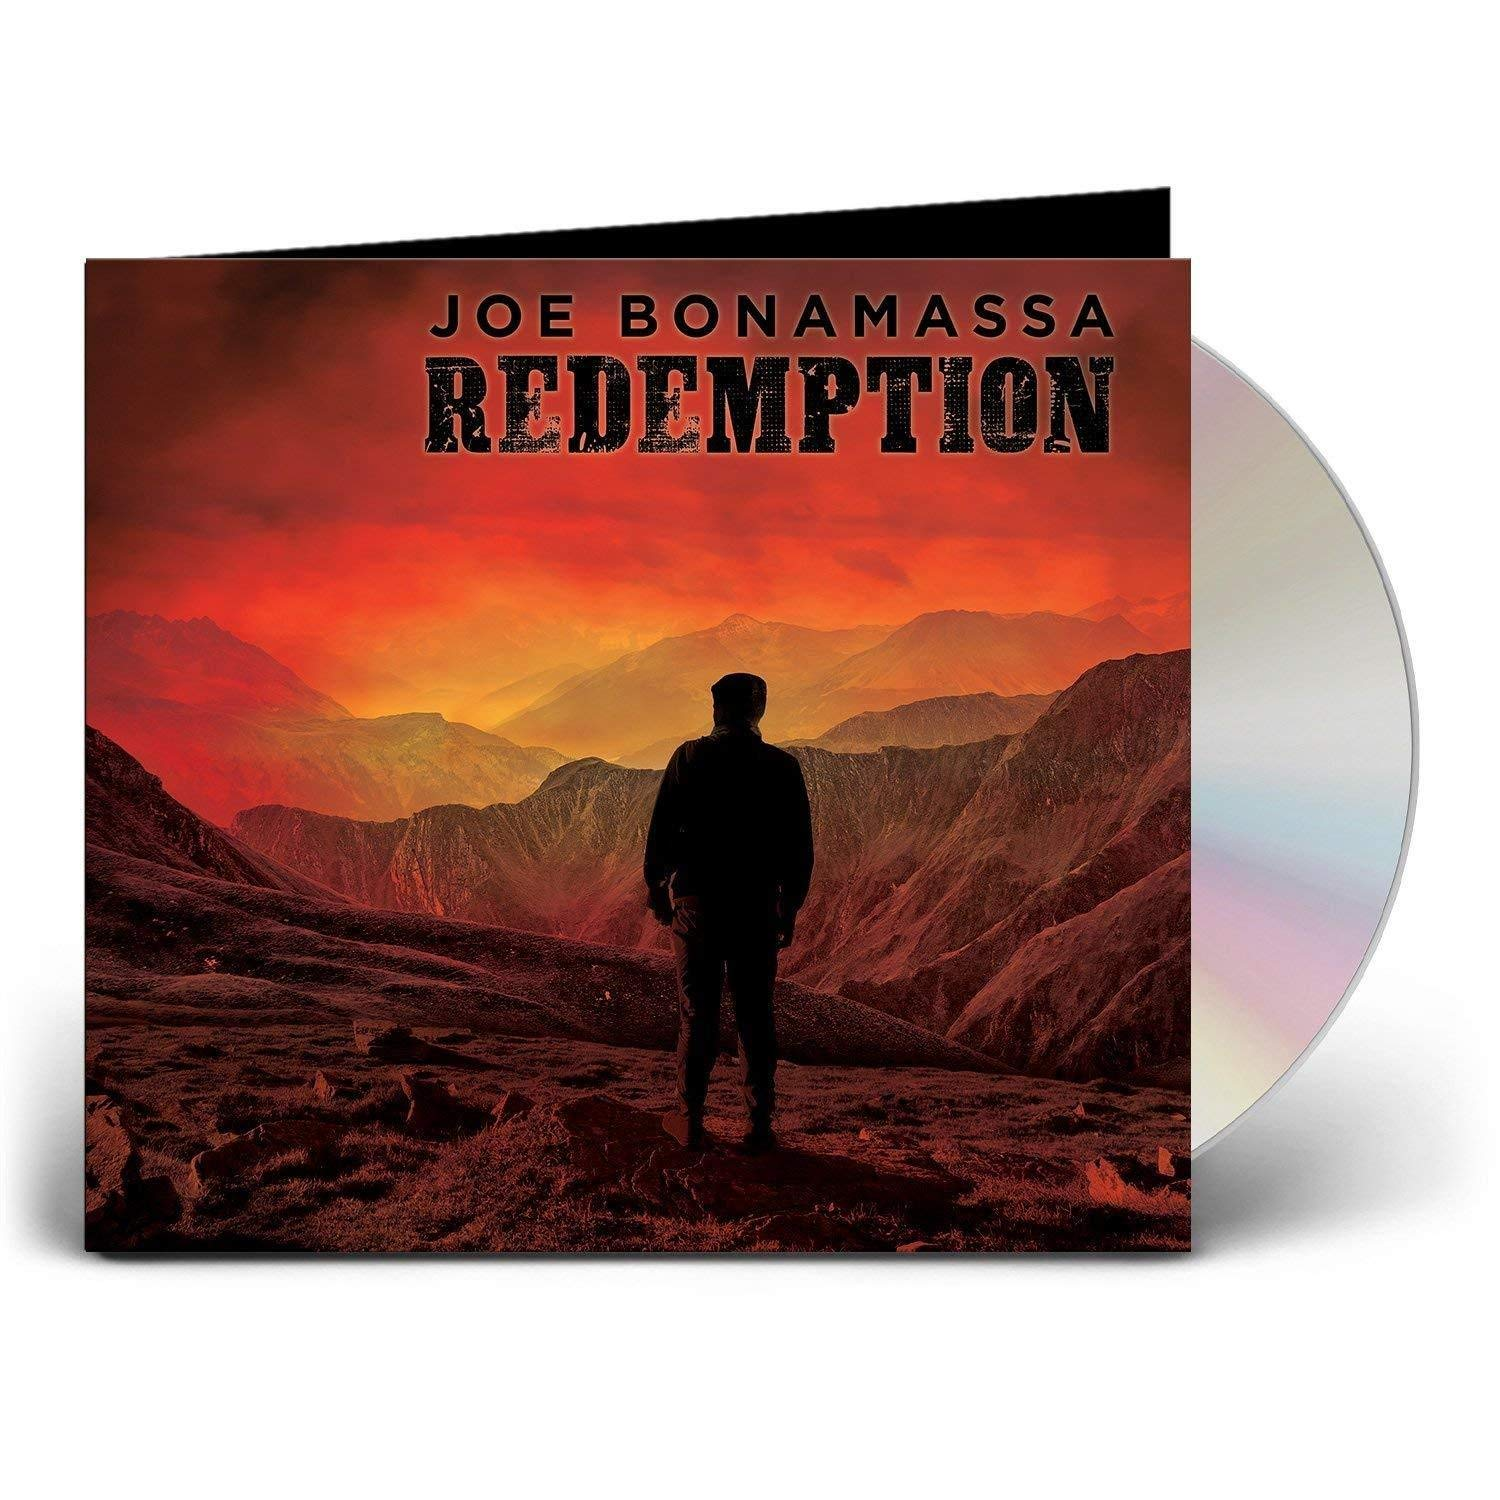 JOE BONAMASSA - REDEMPTION (DELUXE) (CD)